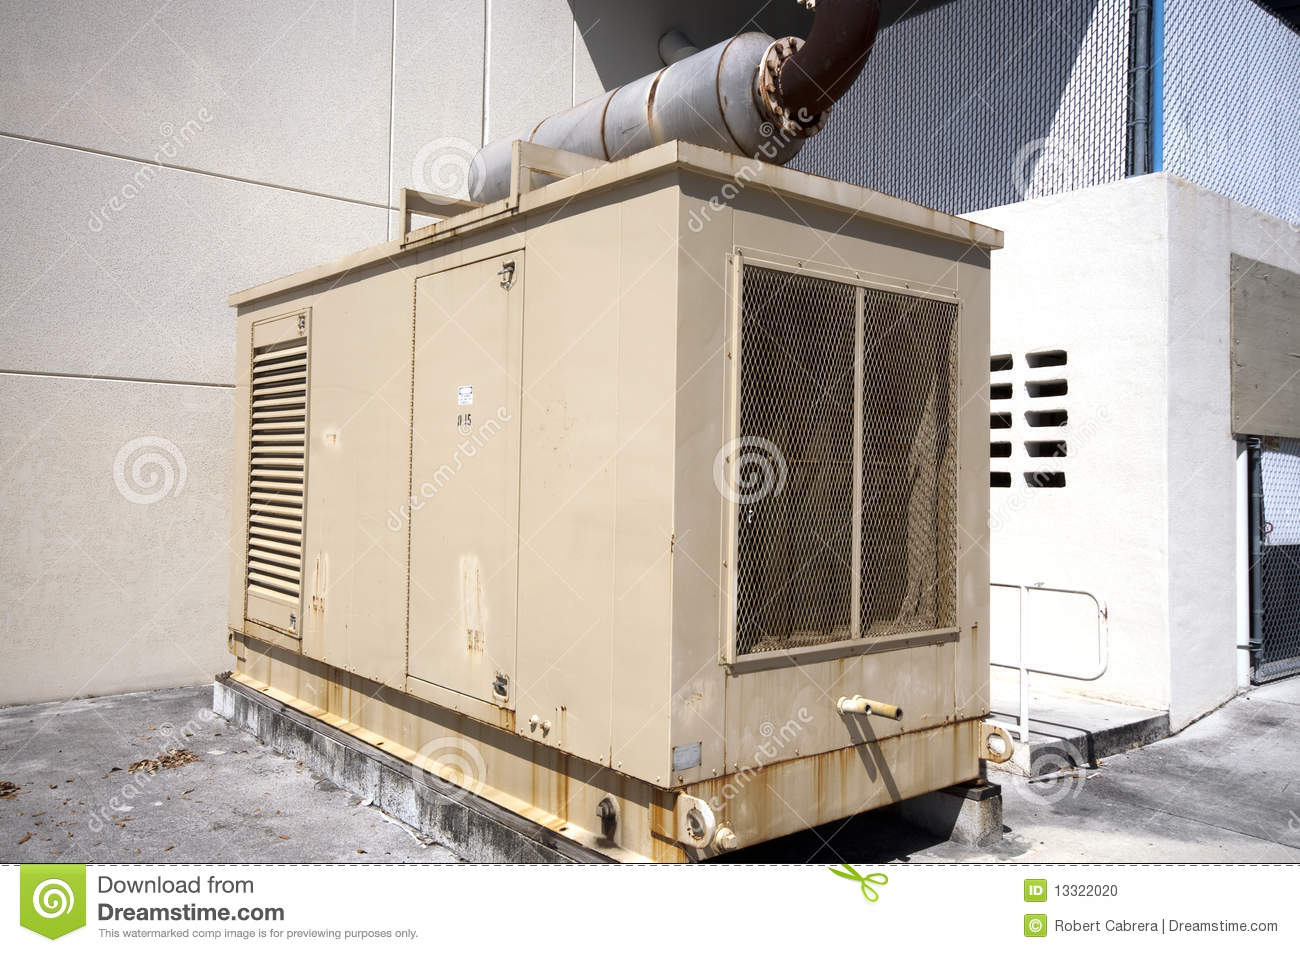 Diesel powered stanby emergency Generator unit on the exterior of a  building ready in case of power failure 063d2baf57a